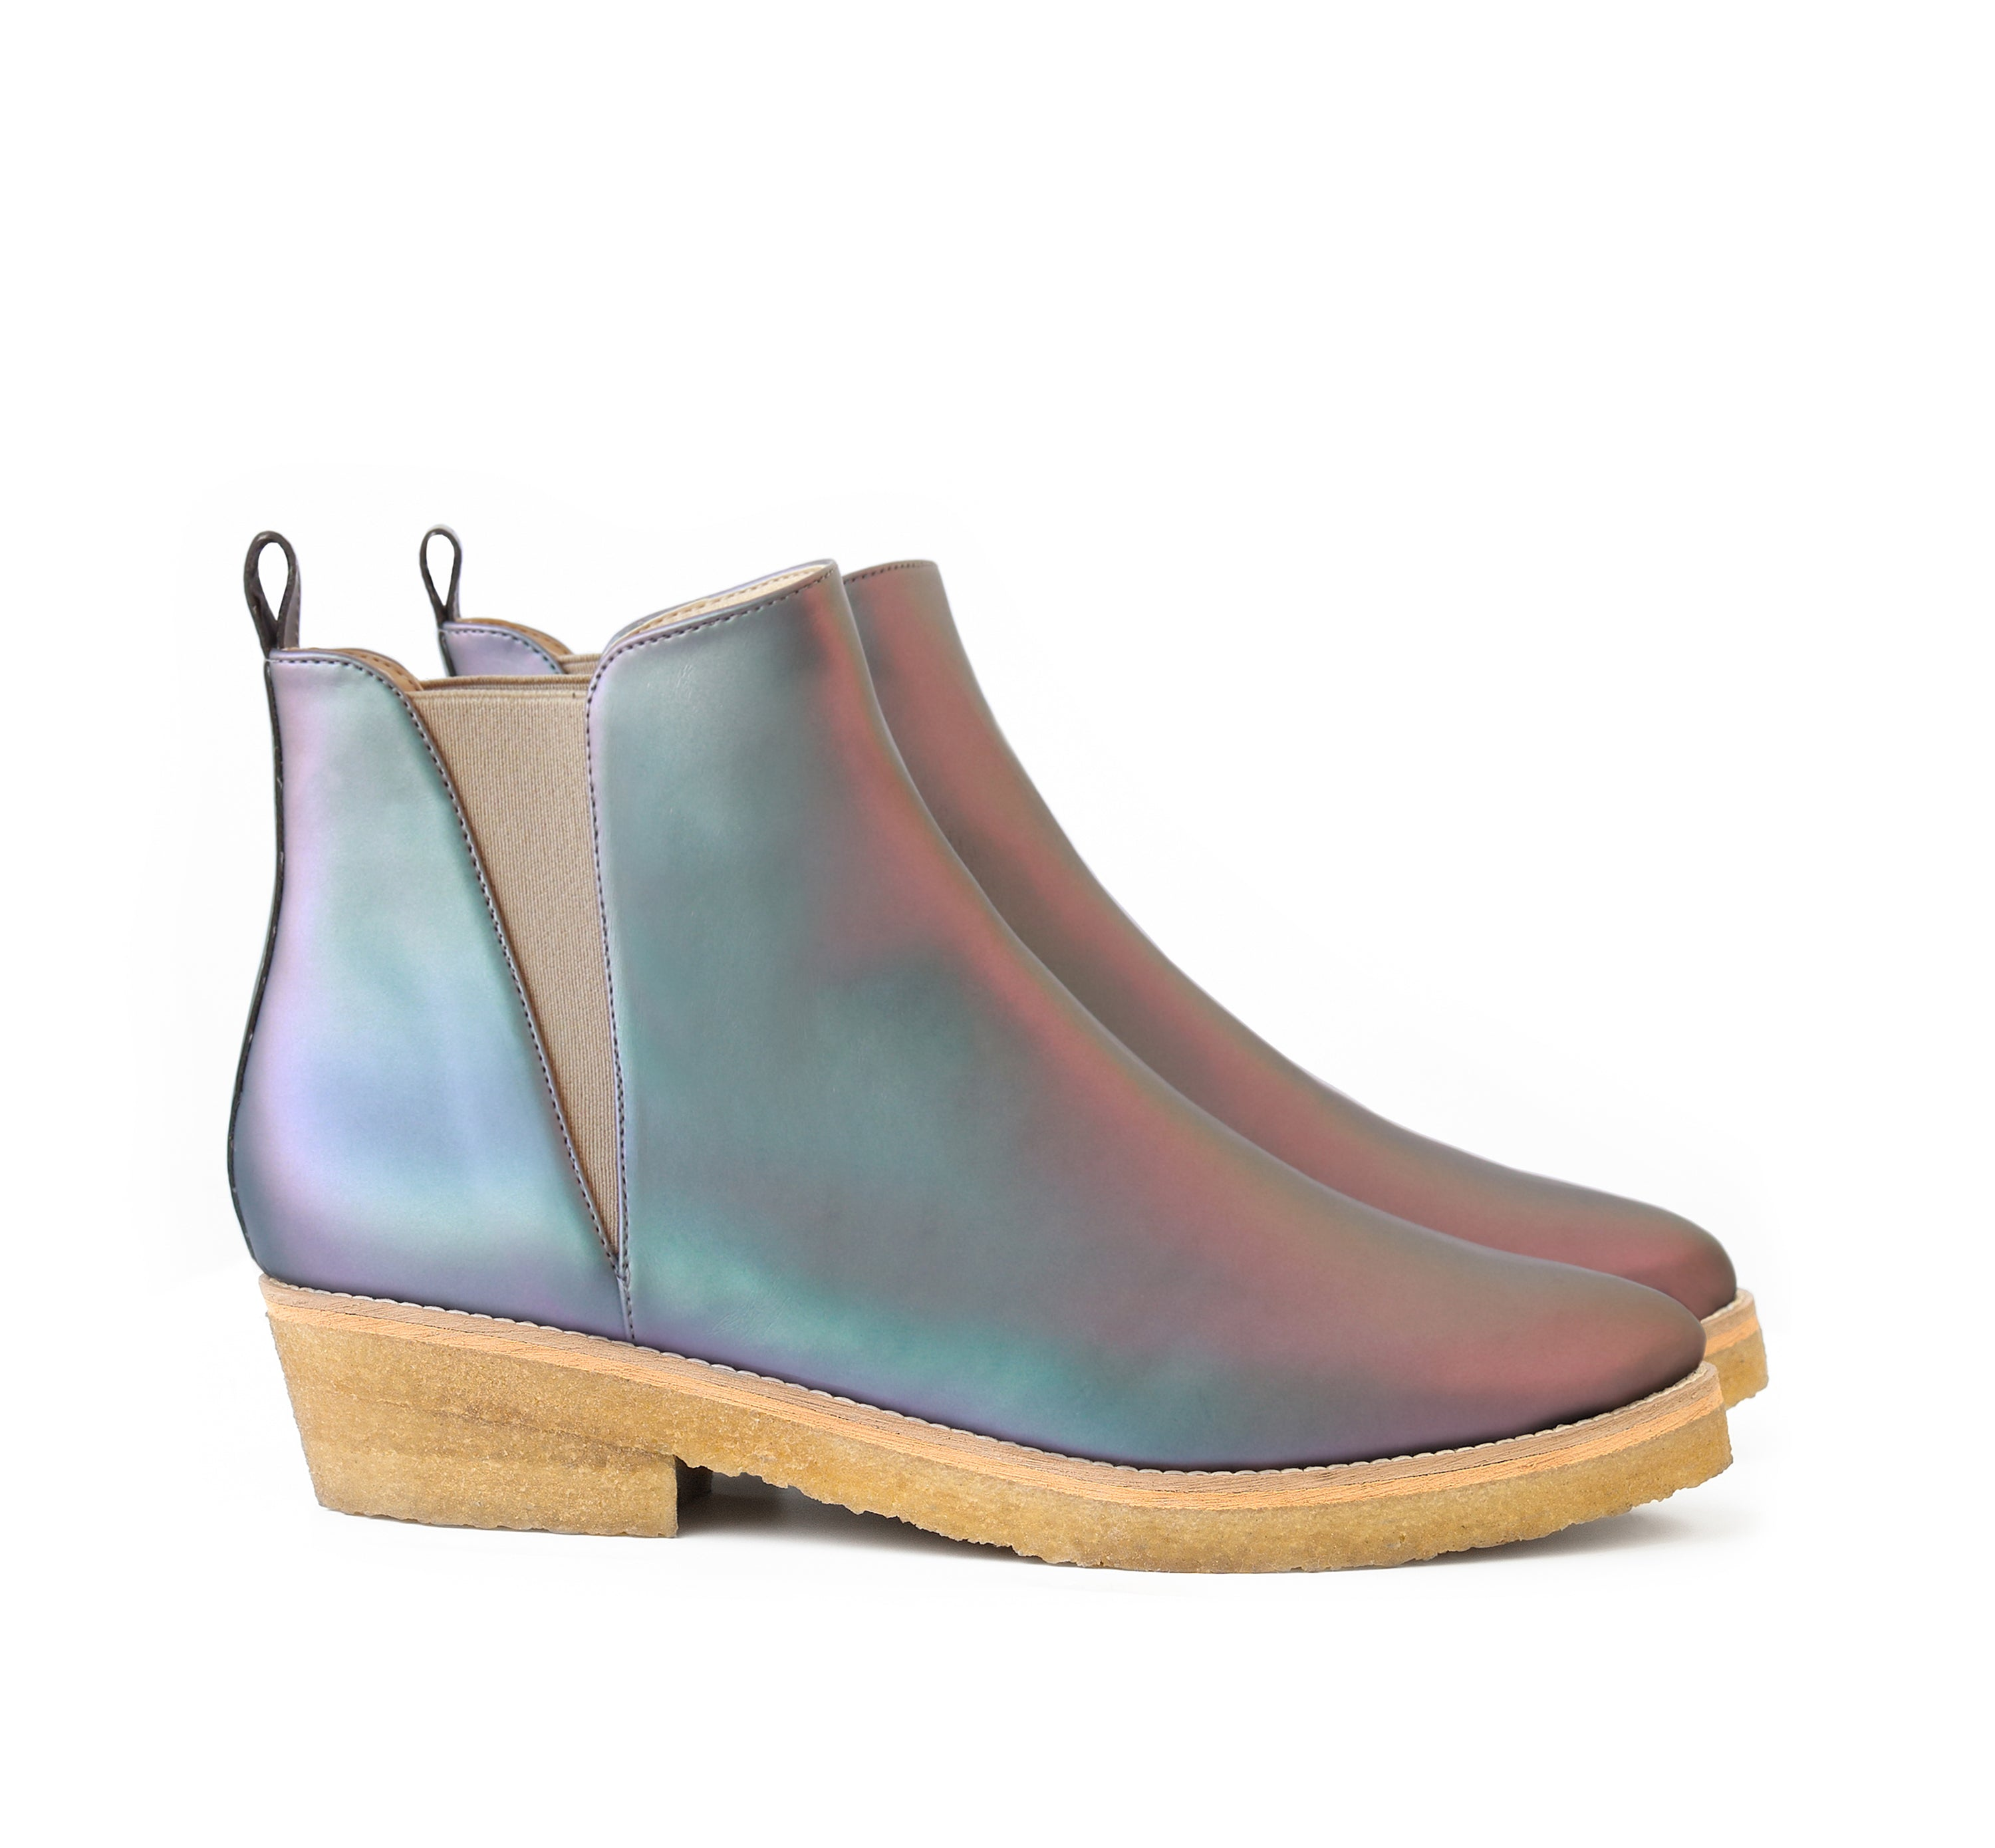 Crepe Ankle Boot in Matte Iridescent faux-nappa, breathable lining with natural rubber crepe sole. Luxury vegan shoes. Sydney Brown Spring Summer 2019. Sustainable, eco-friendly SS19 fashion